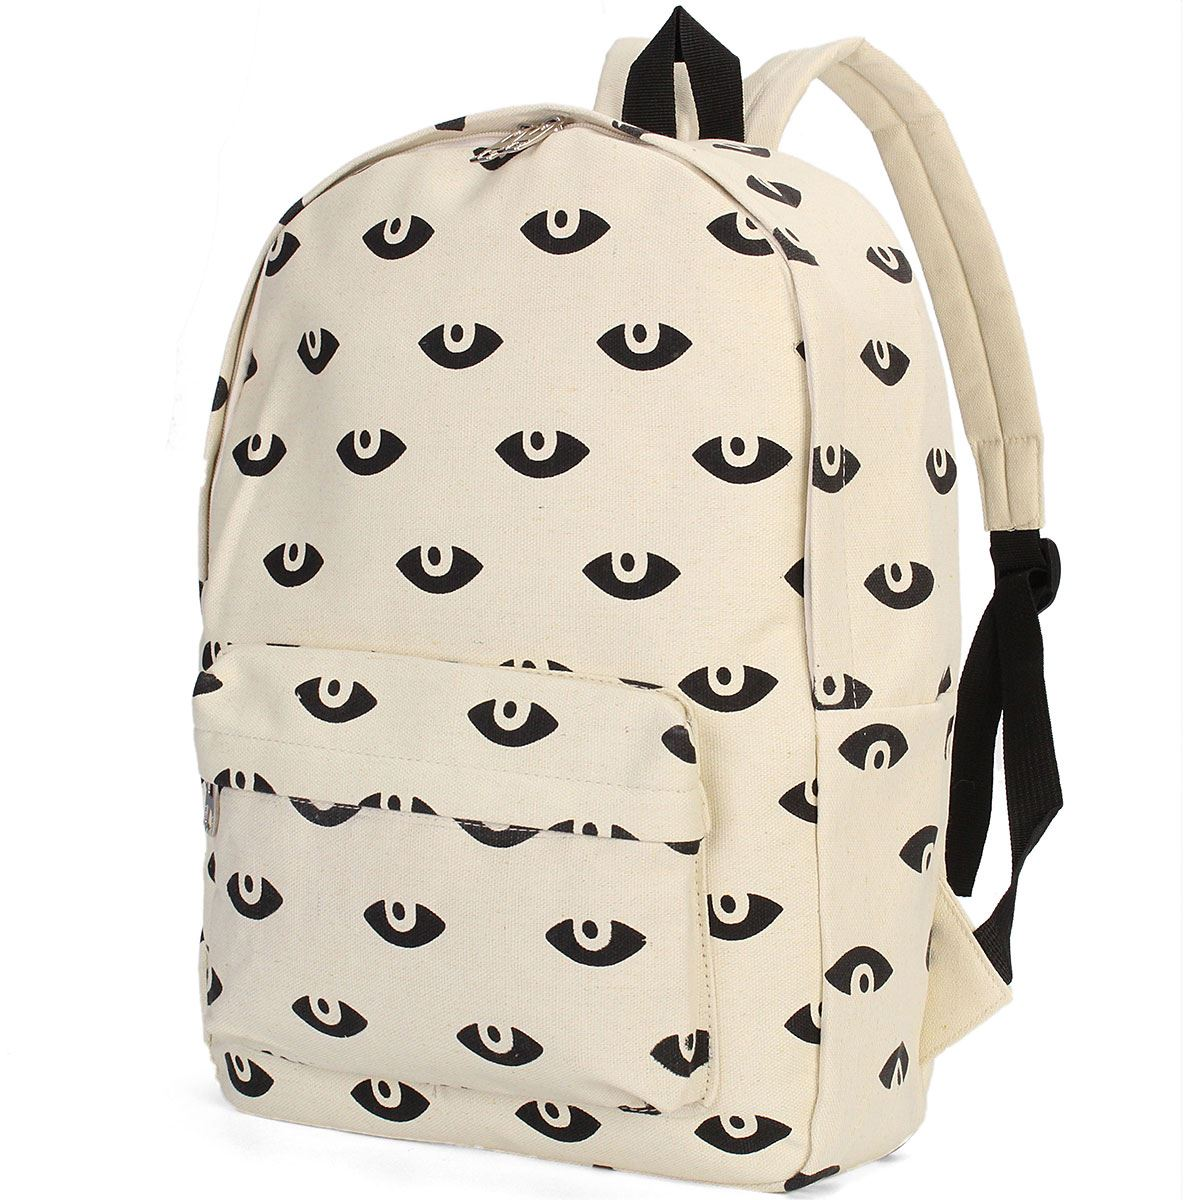 Cheap Cute Backpacks For School 0OCR821d